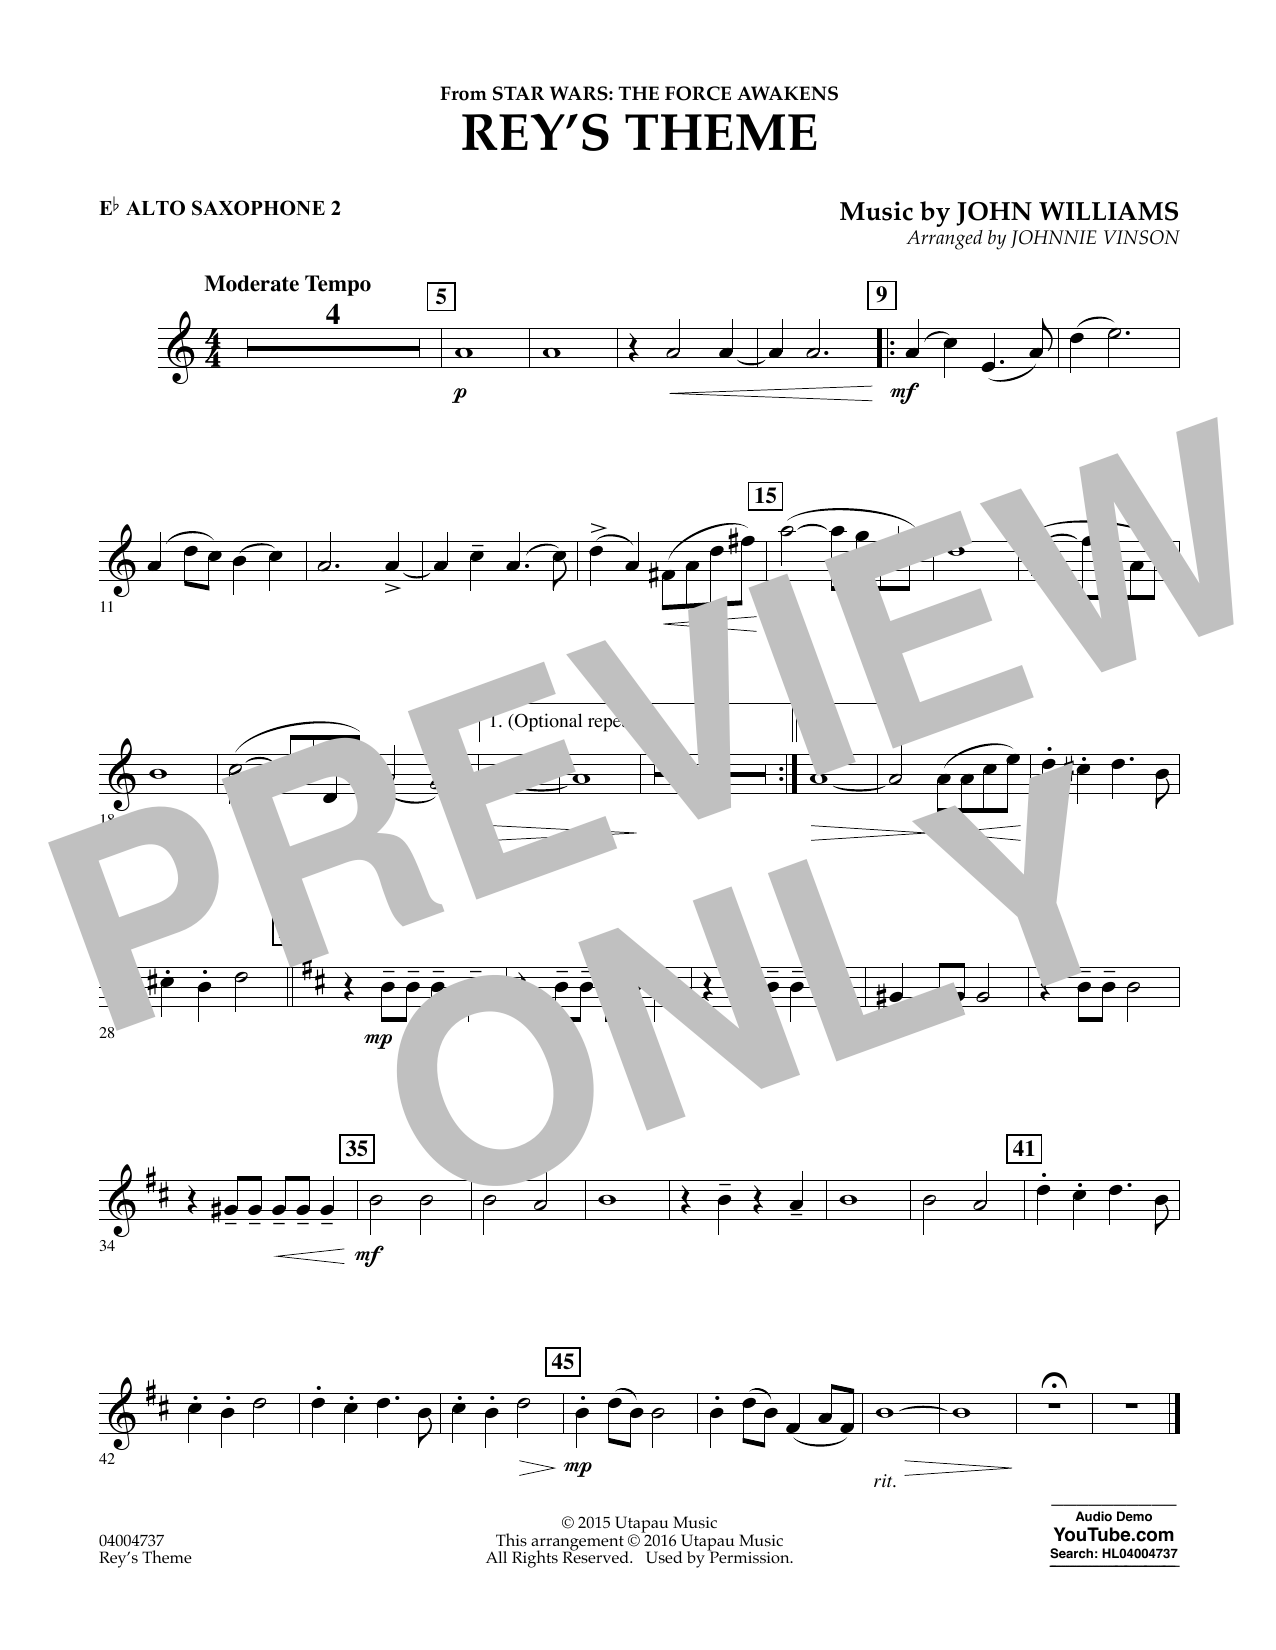 Rey's Theme (from Star Wars: The Force Awakens) - Eb Alto Saxophone 2 (Concert Band)